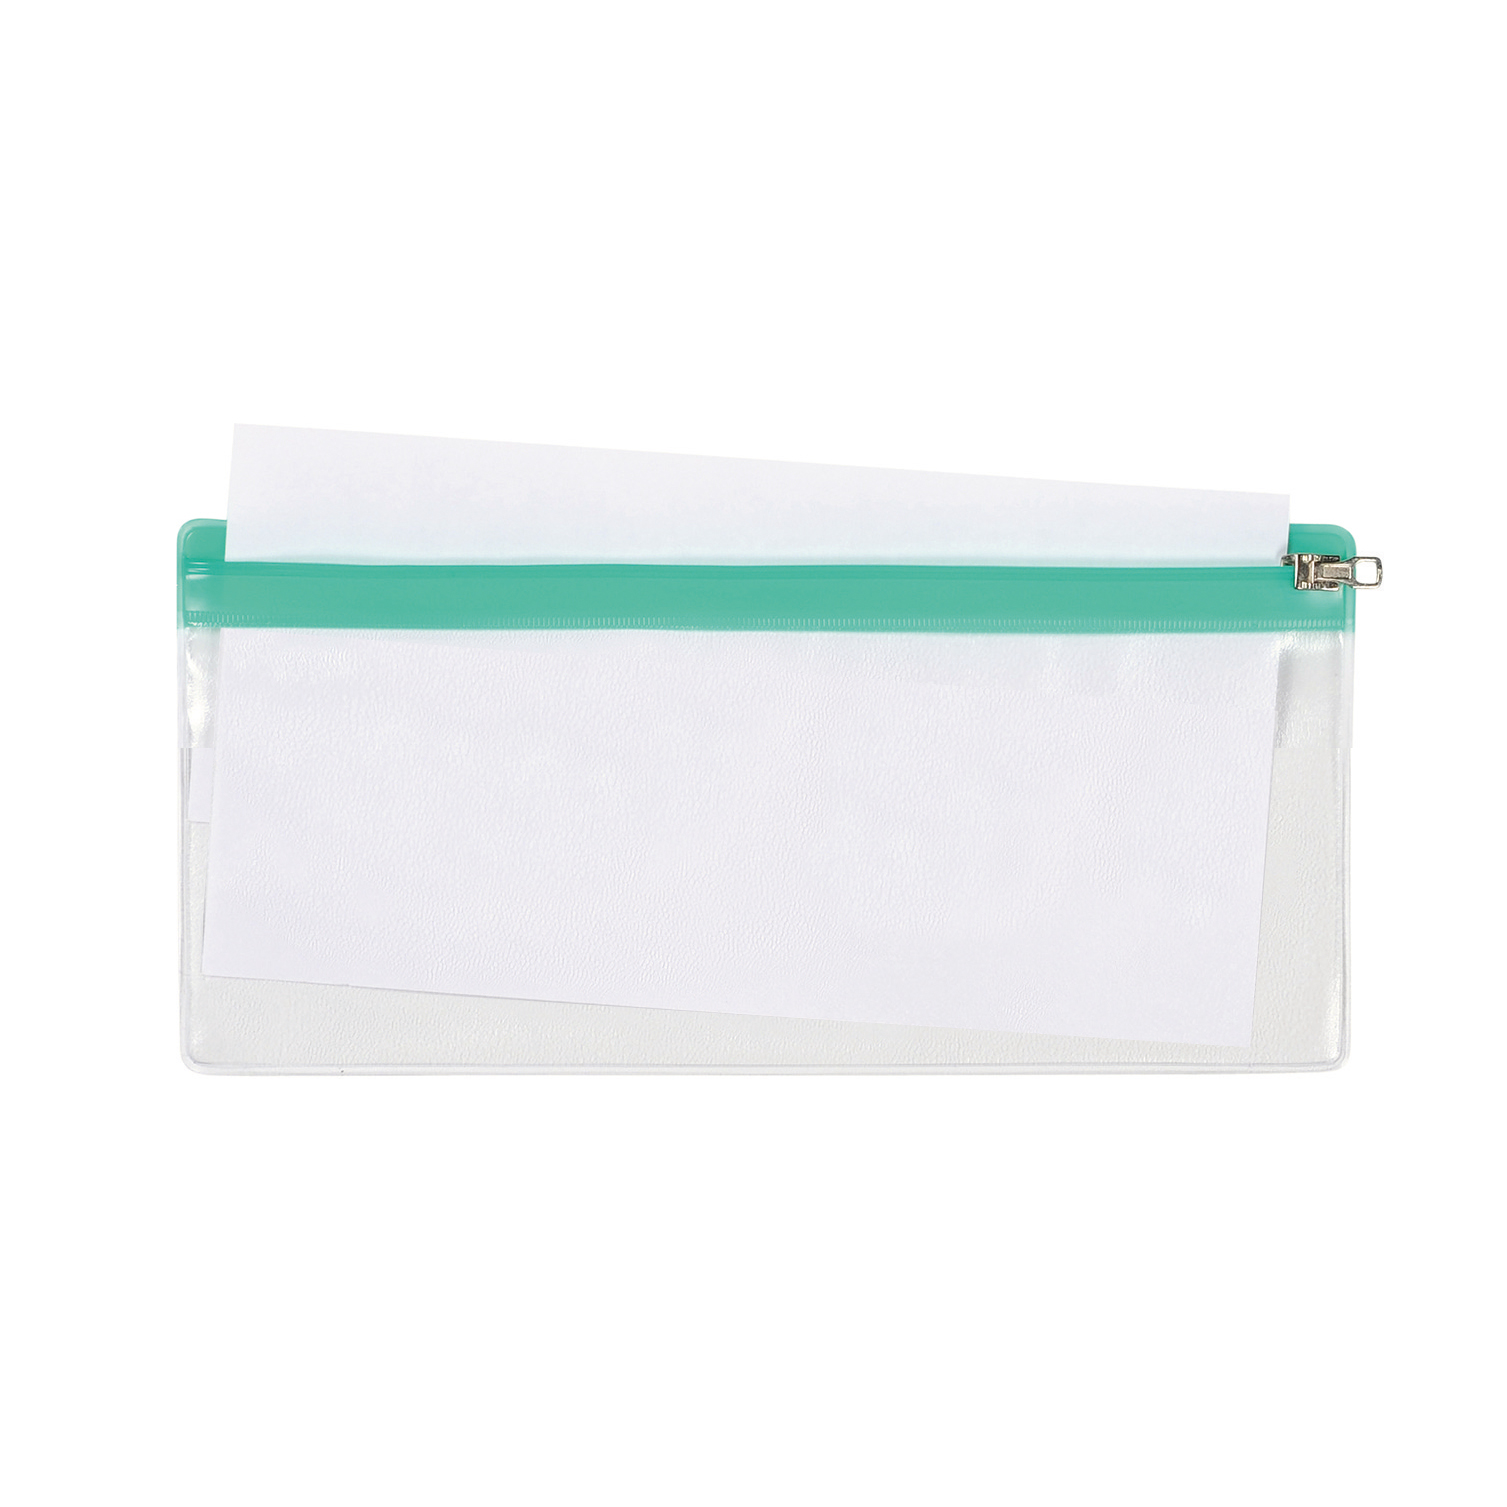 Folders 5 Star DL Zip Bag 210x145mm Transparent with Zip Colour Astd Pack 5